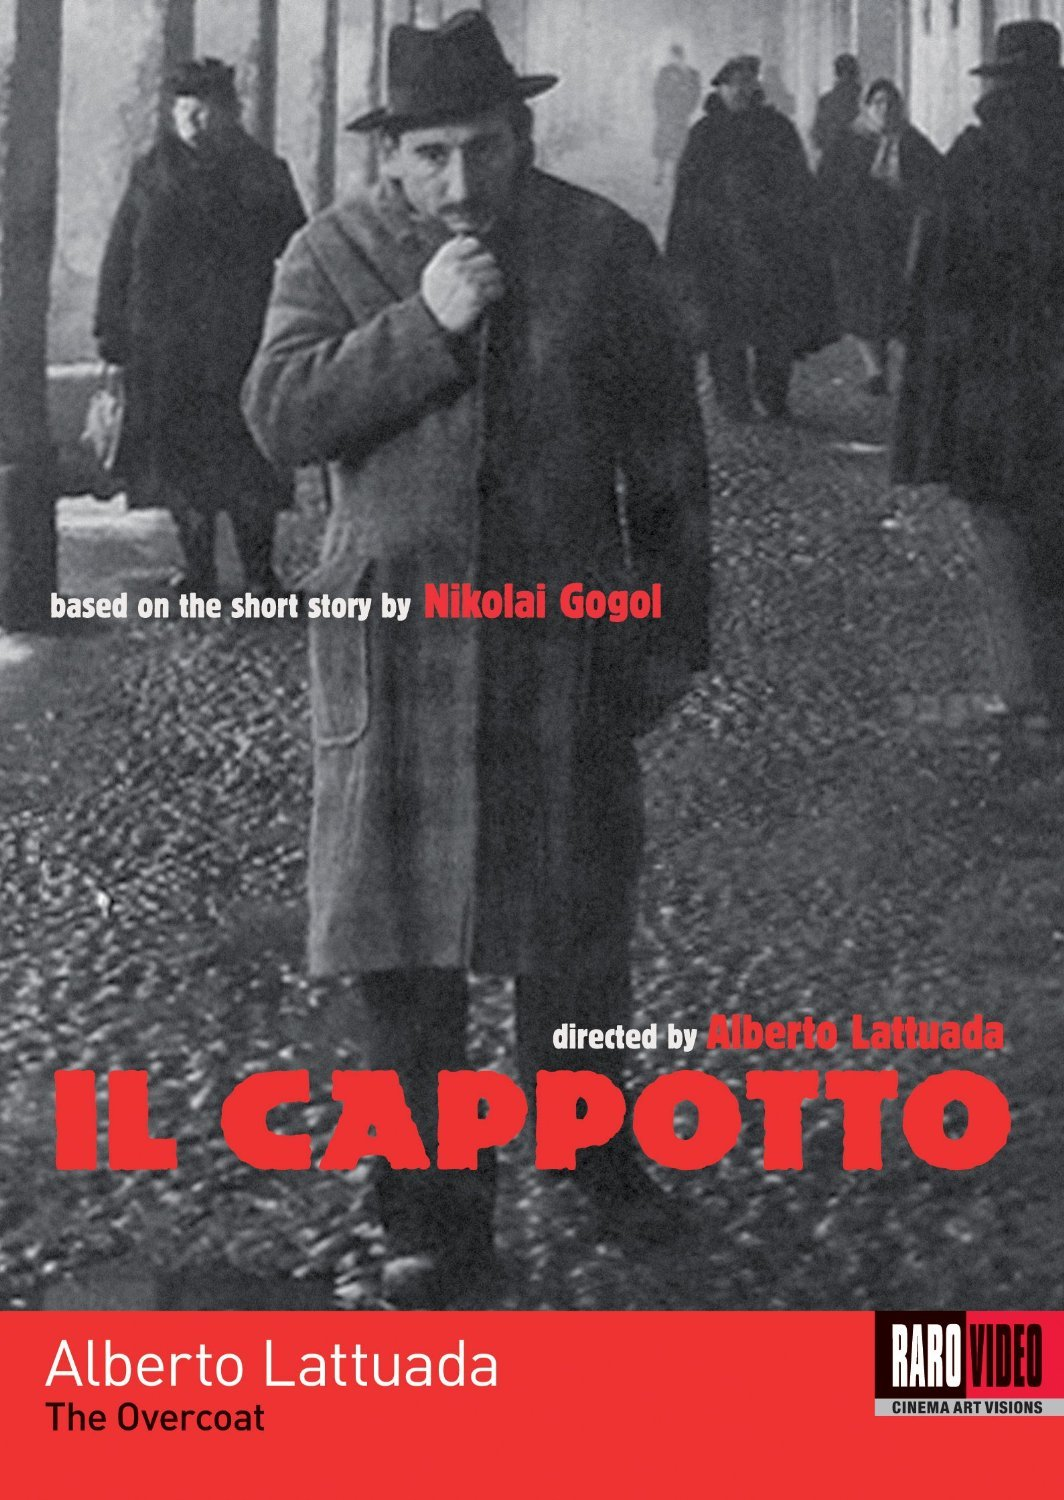 The Overcoat (IL Cappotto) DVD, Raro Video (pre-viewed)